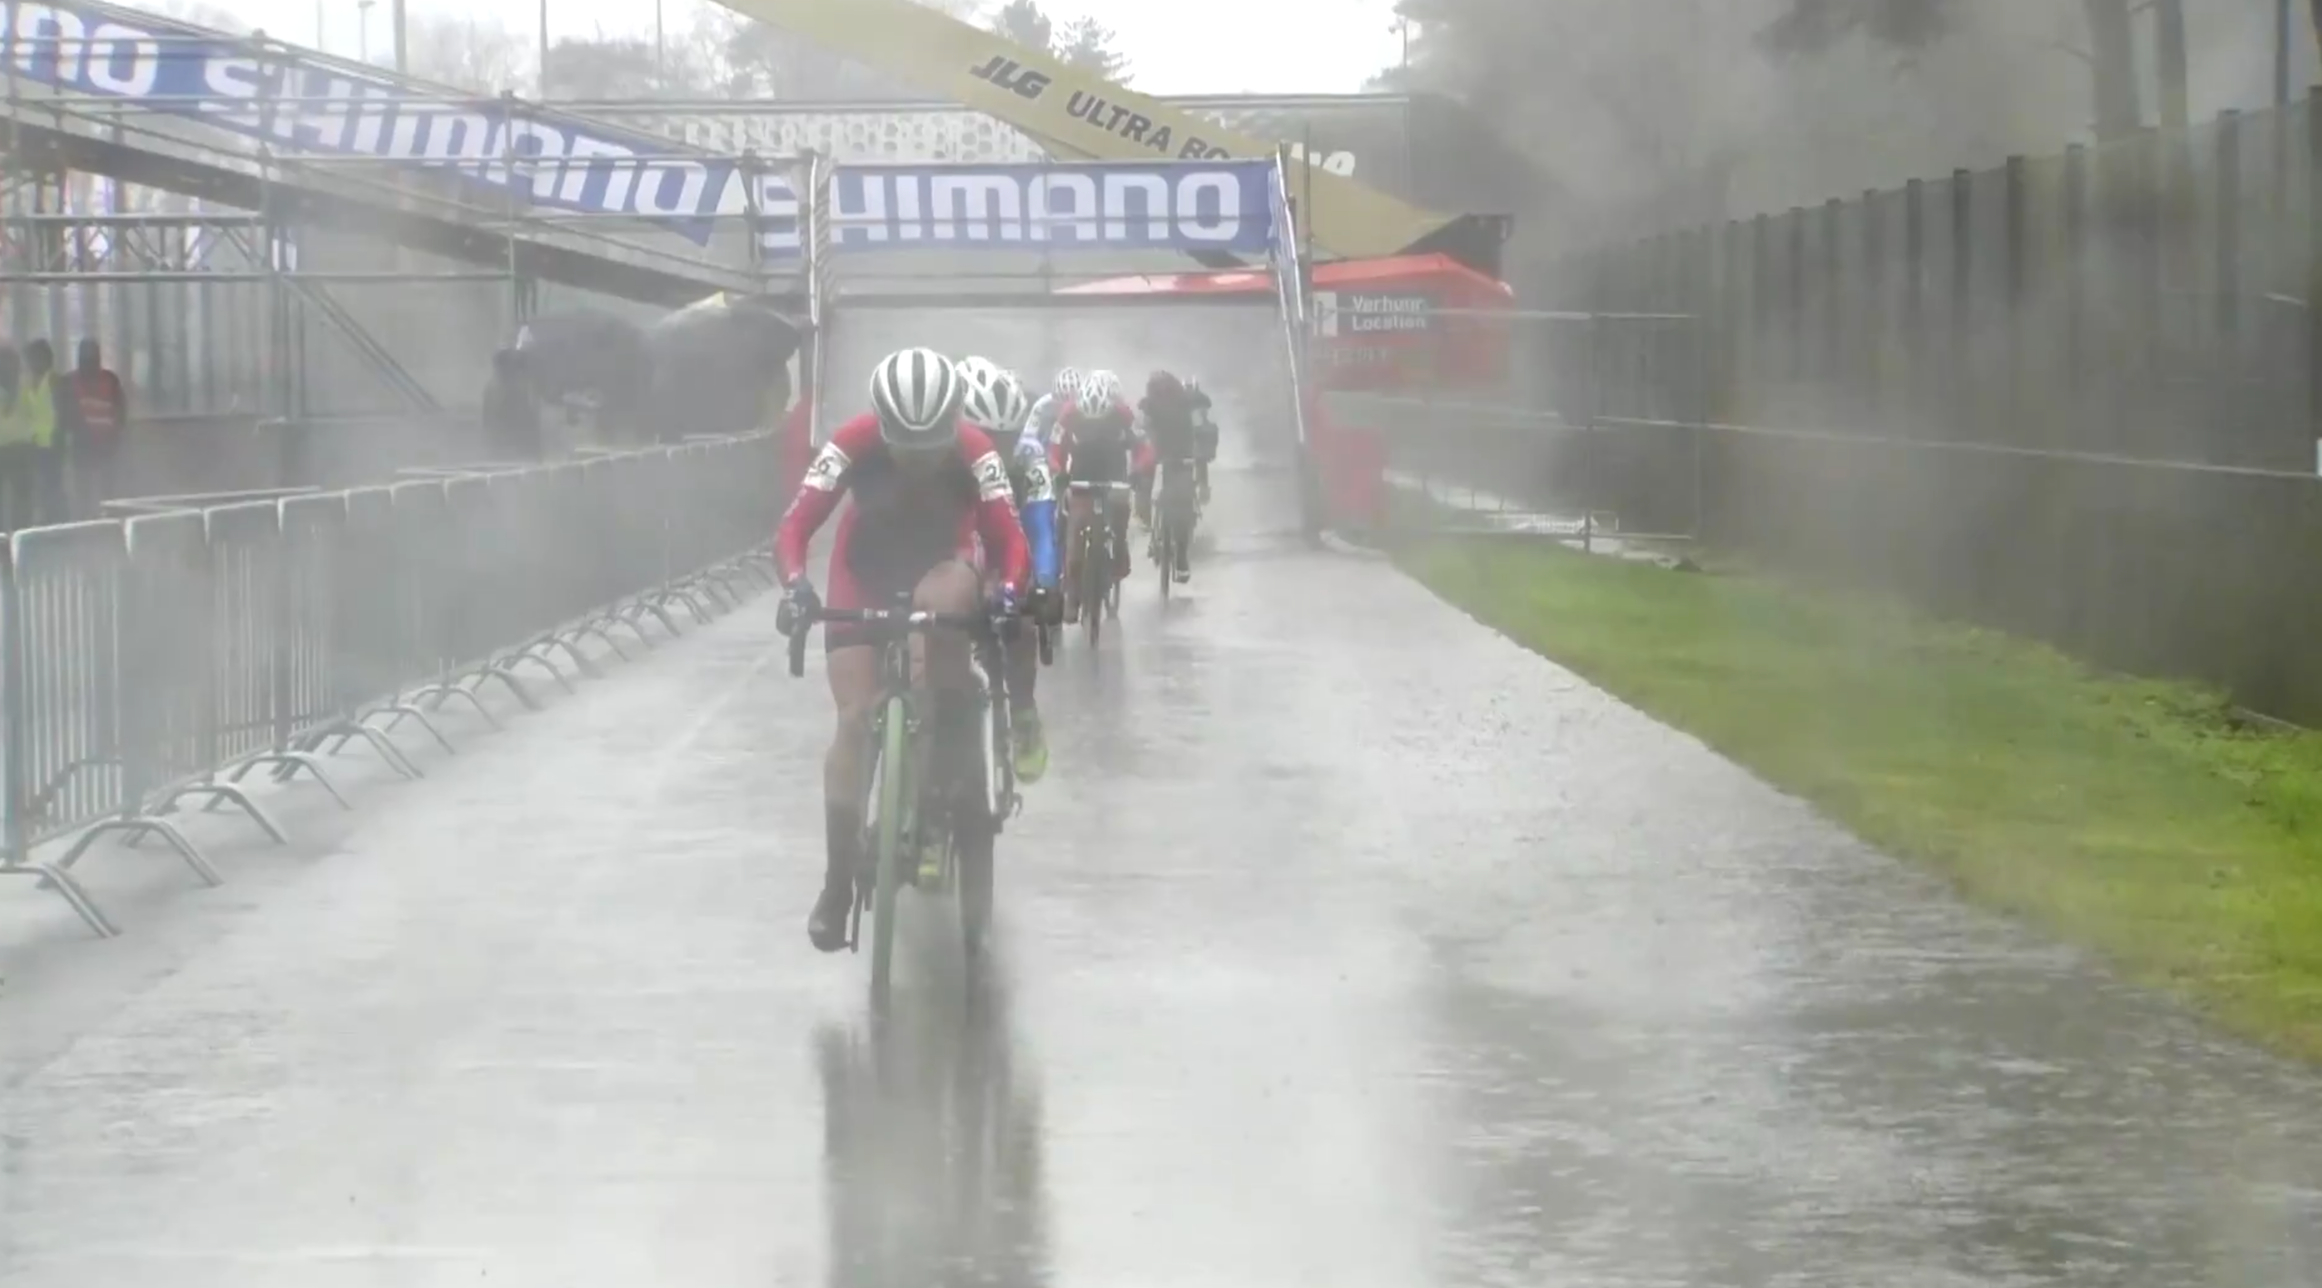 The downpour made it difficult to see and most riders had to ditch their glasses.